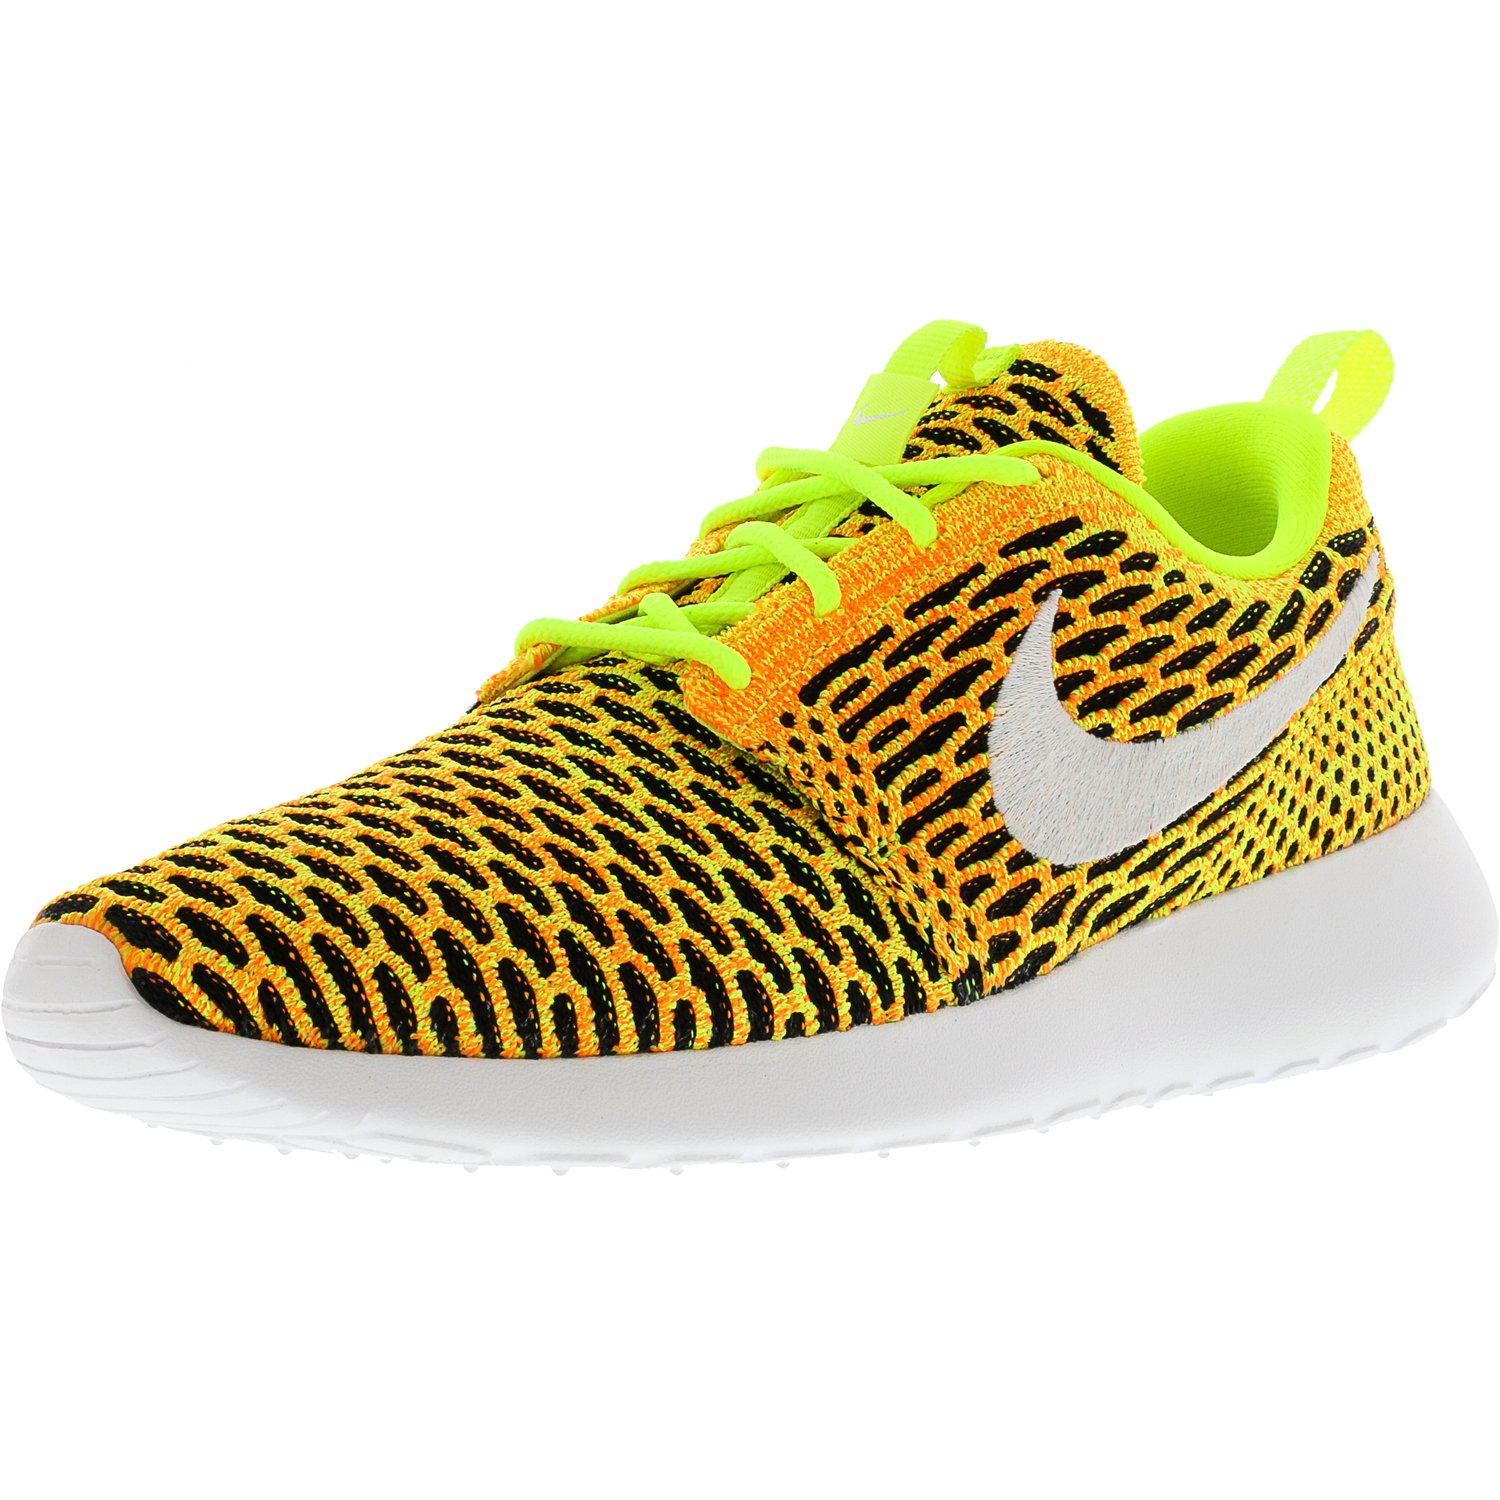 748f8e1a9f6253 ... low price nike womens roshe one flyknit volt white total orange black  ankle high running shoe